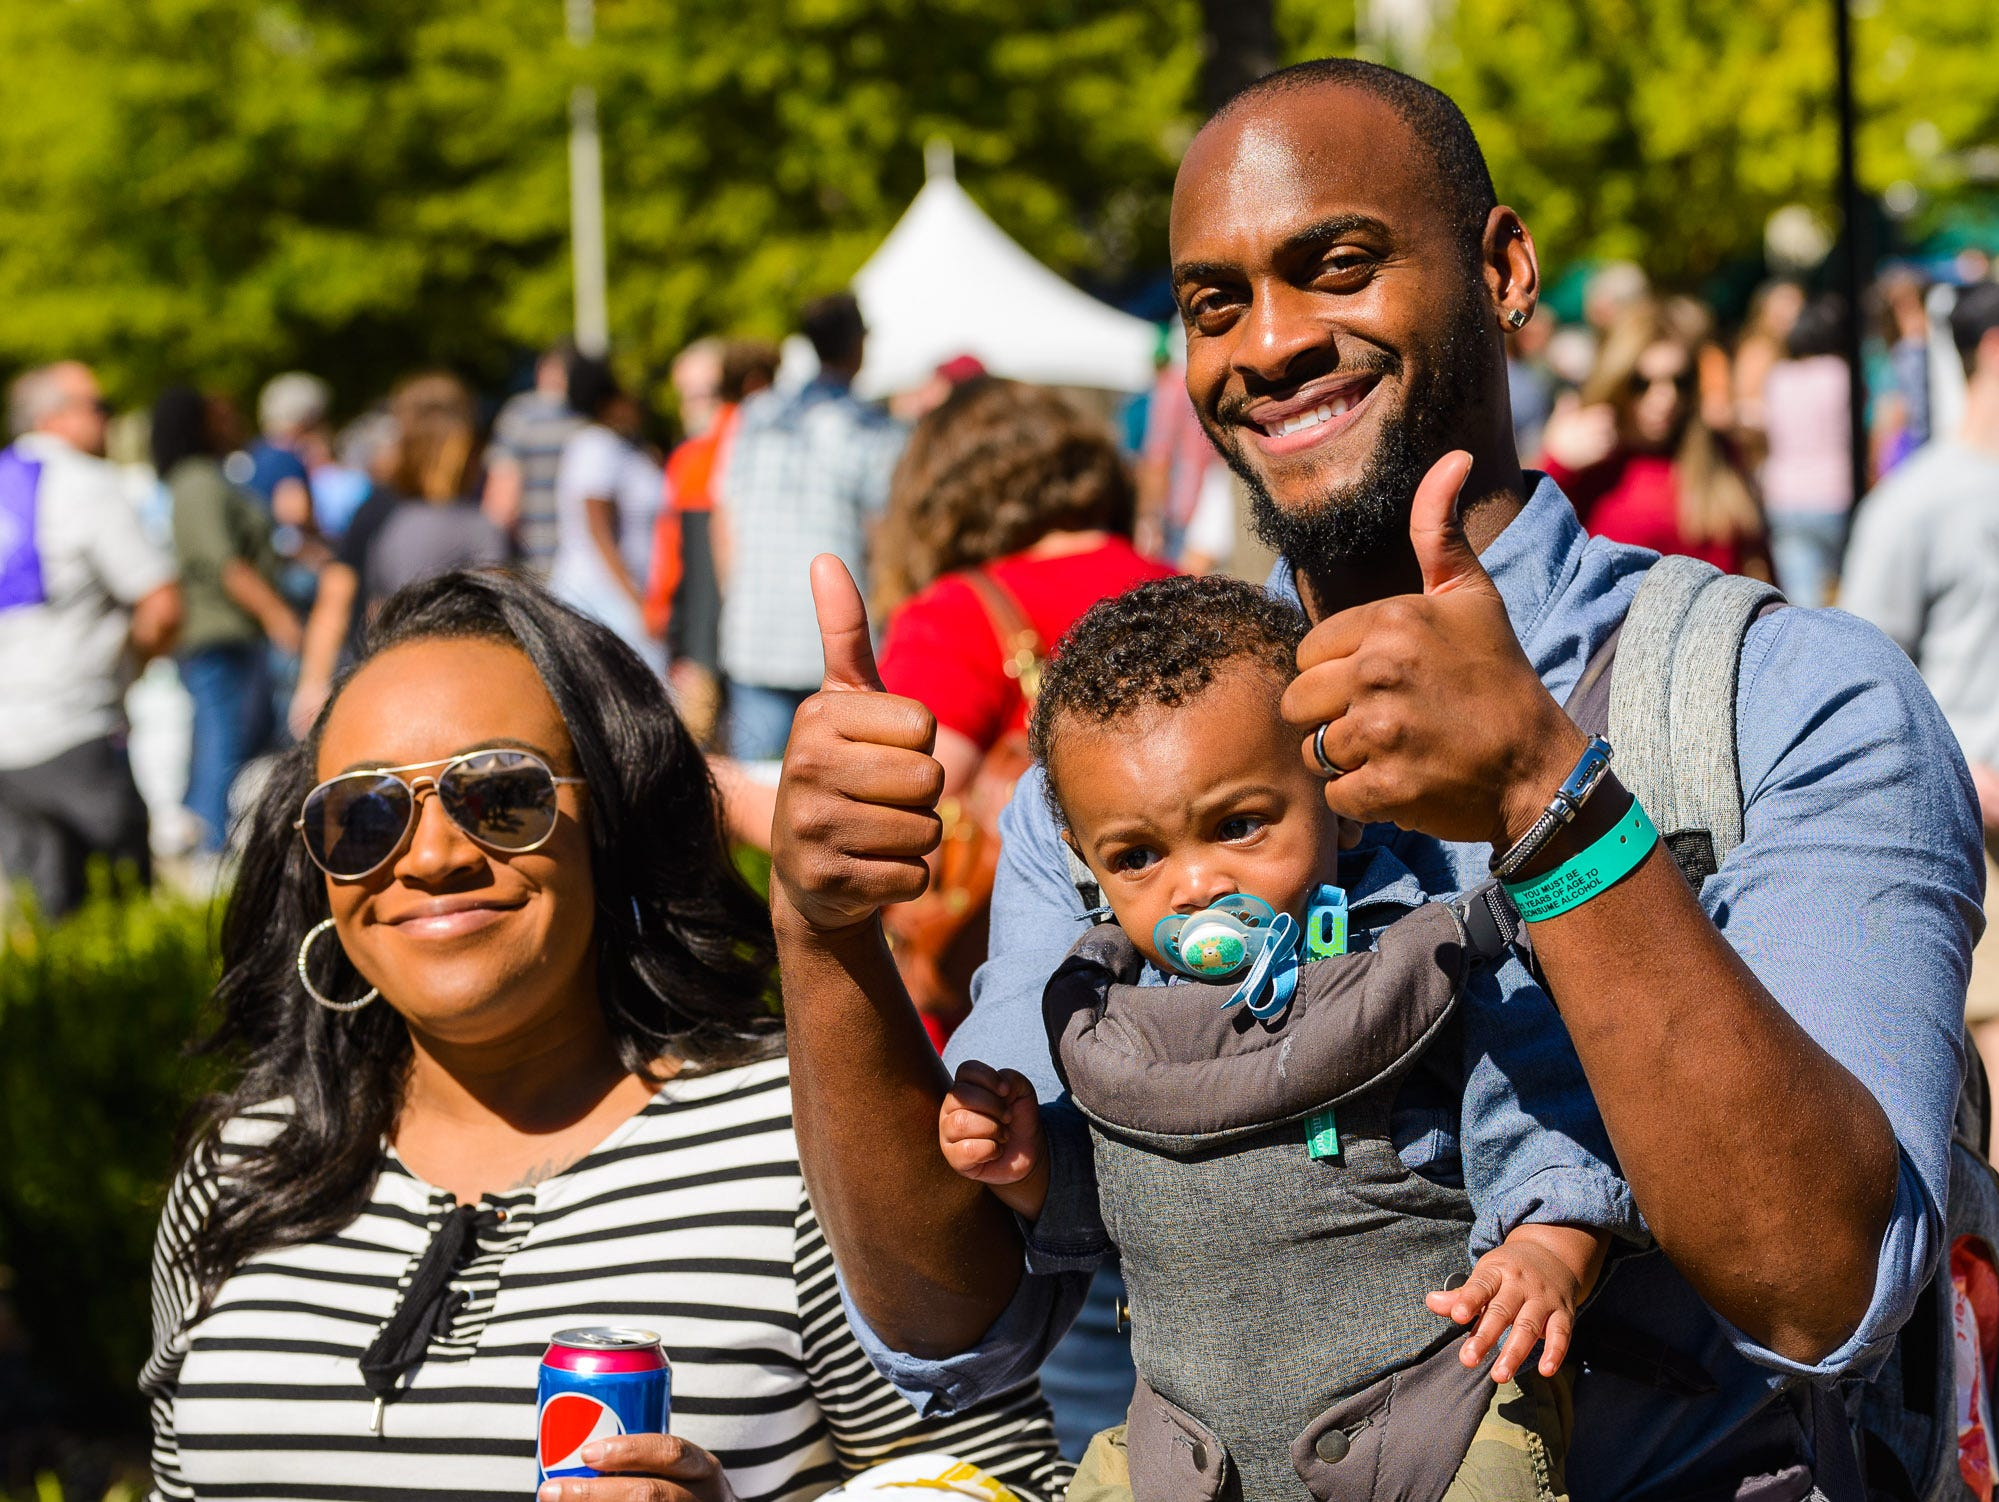 People from all over the upstate crowd Greenville's Main Street to enjoy Fall for Greenville on Saturday, October 12, 2018.